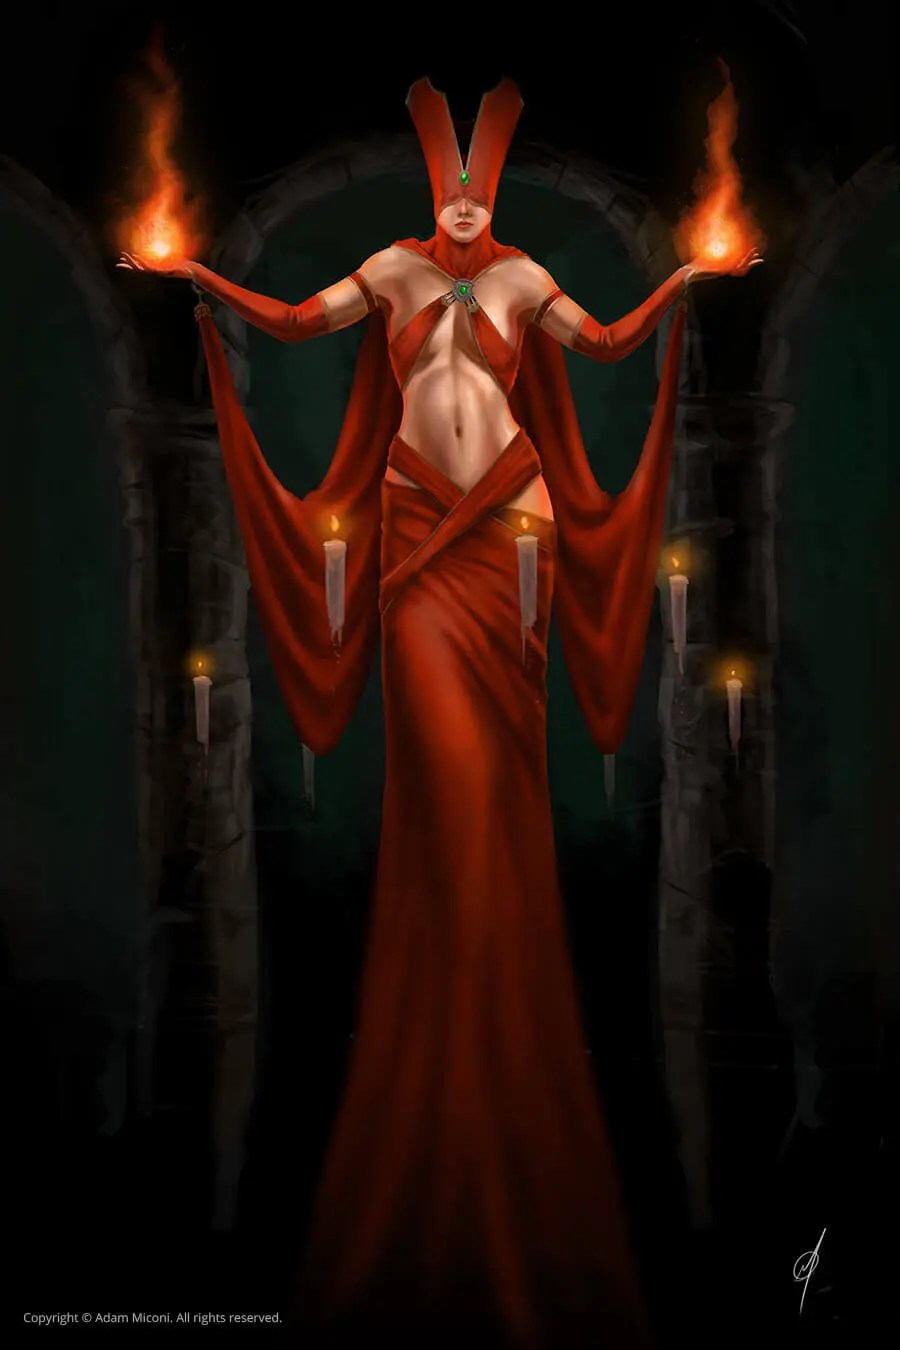 Poster Red Red Sorceress Poster Adam Miconi Artwork